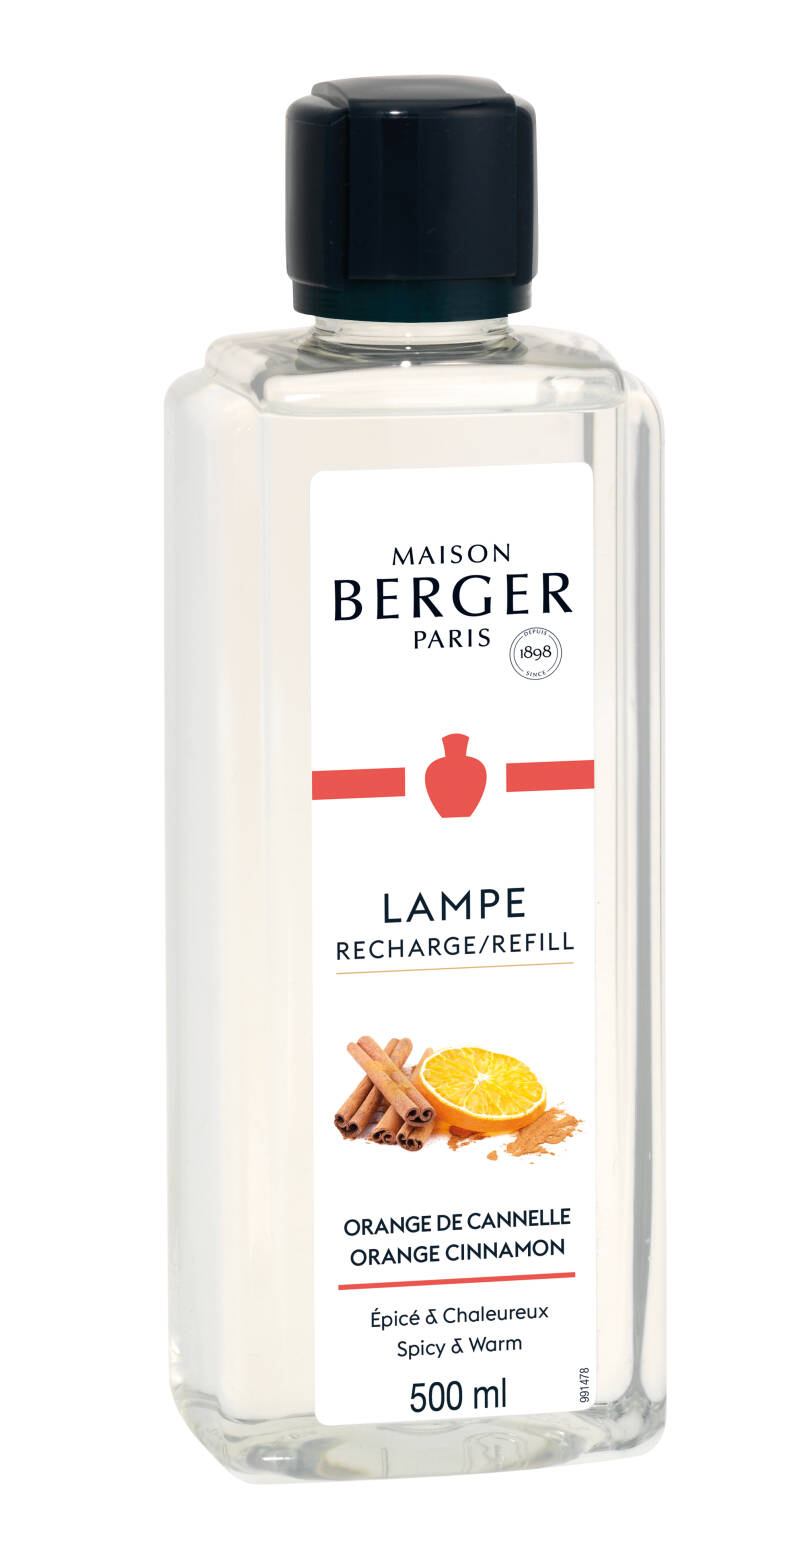 Lampe Berger Zoet Orange Cinnamon navullingen  voor geurbrander 500ml